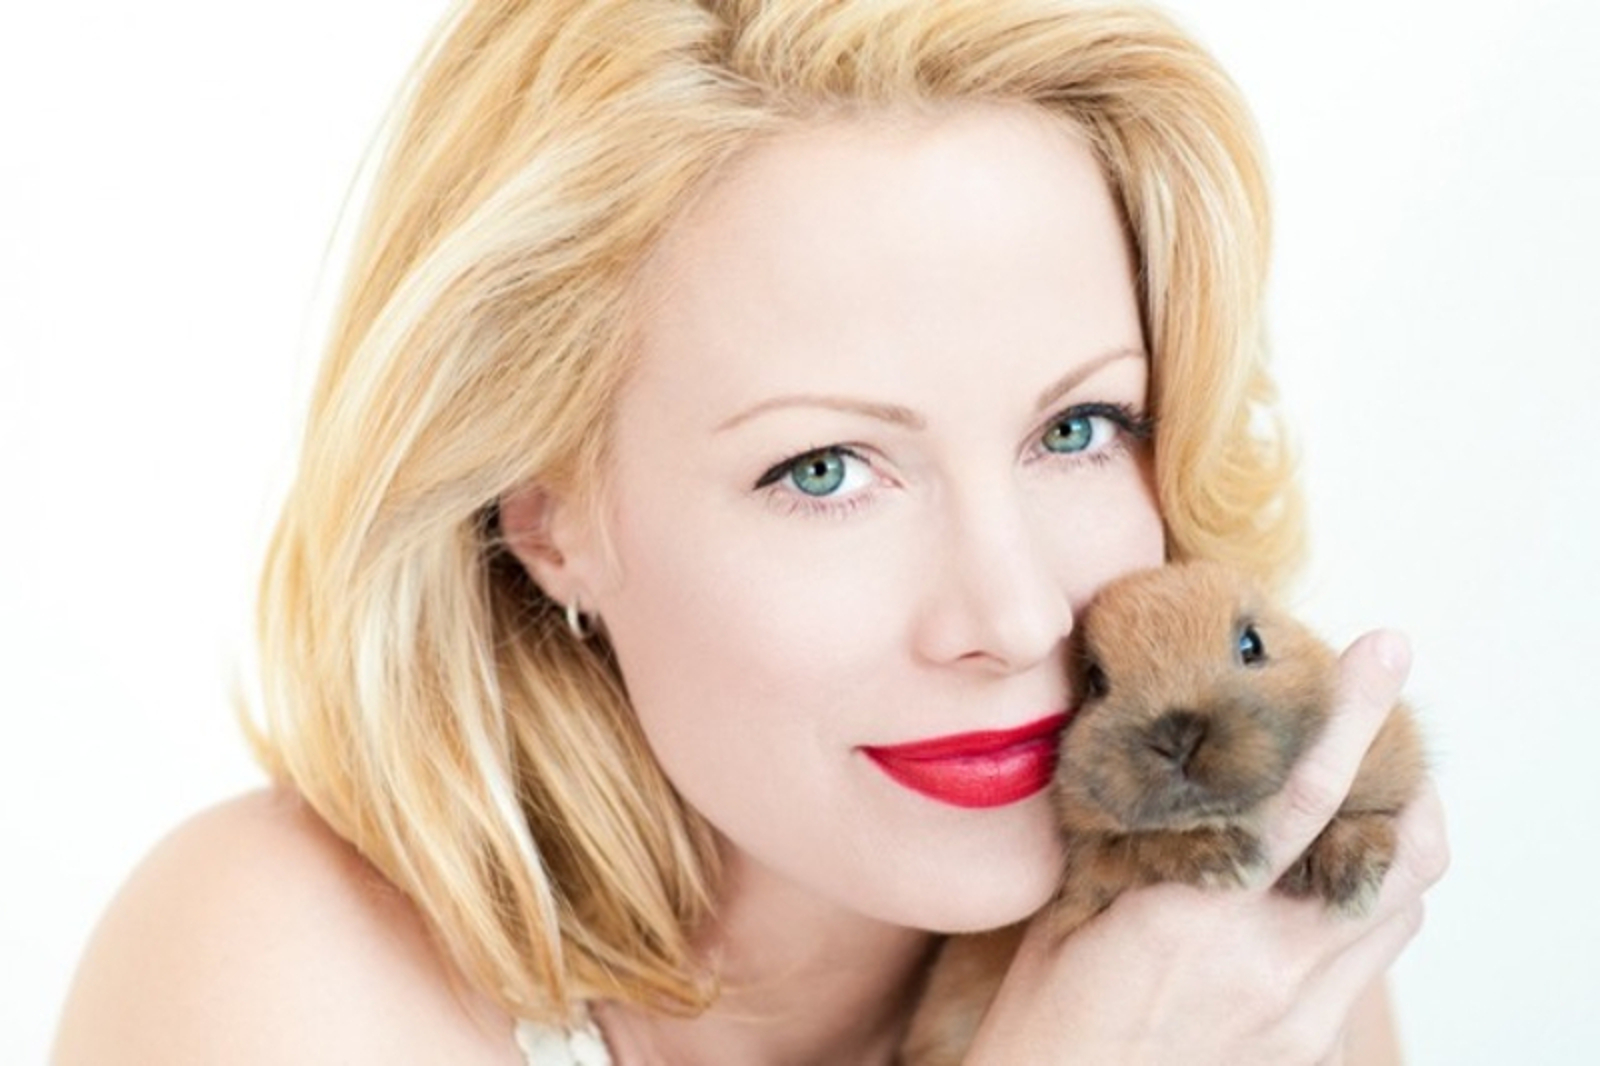 This Amazing New Animal Foster Database Headed by Alison Eastwood Could Help End Pet Homelessness!